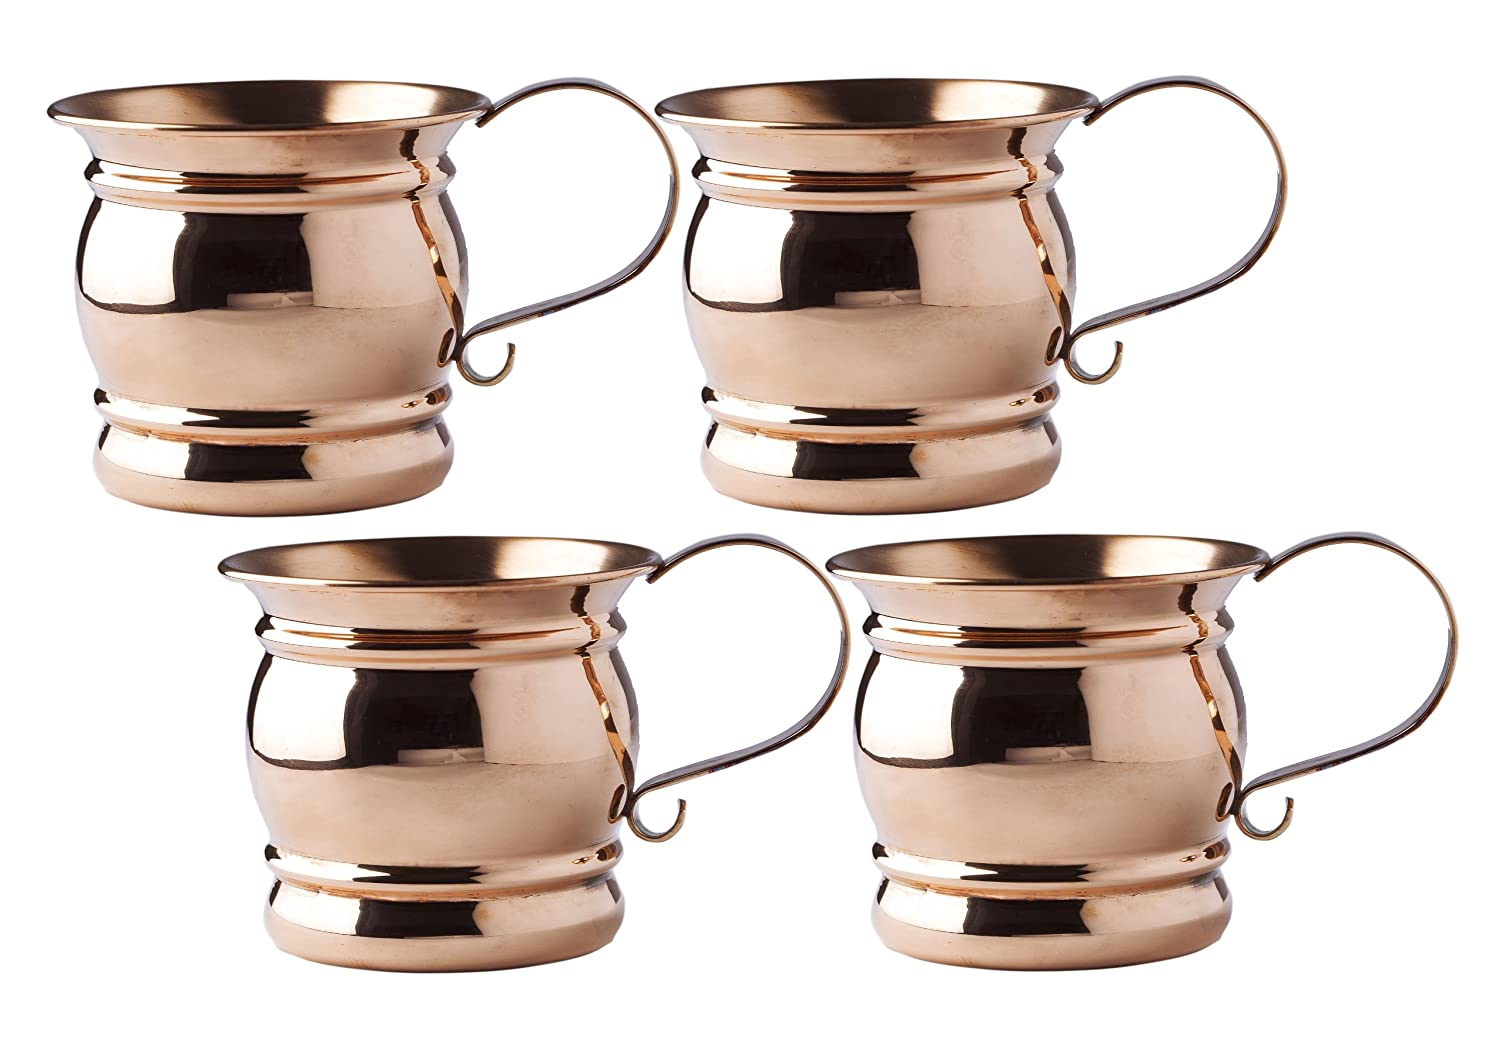 amazoncom old dutch moscow mule mug with flat handle 16ounce set of 4 kitchen u0026 dining - Mule Mug